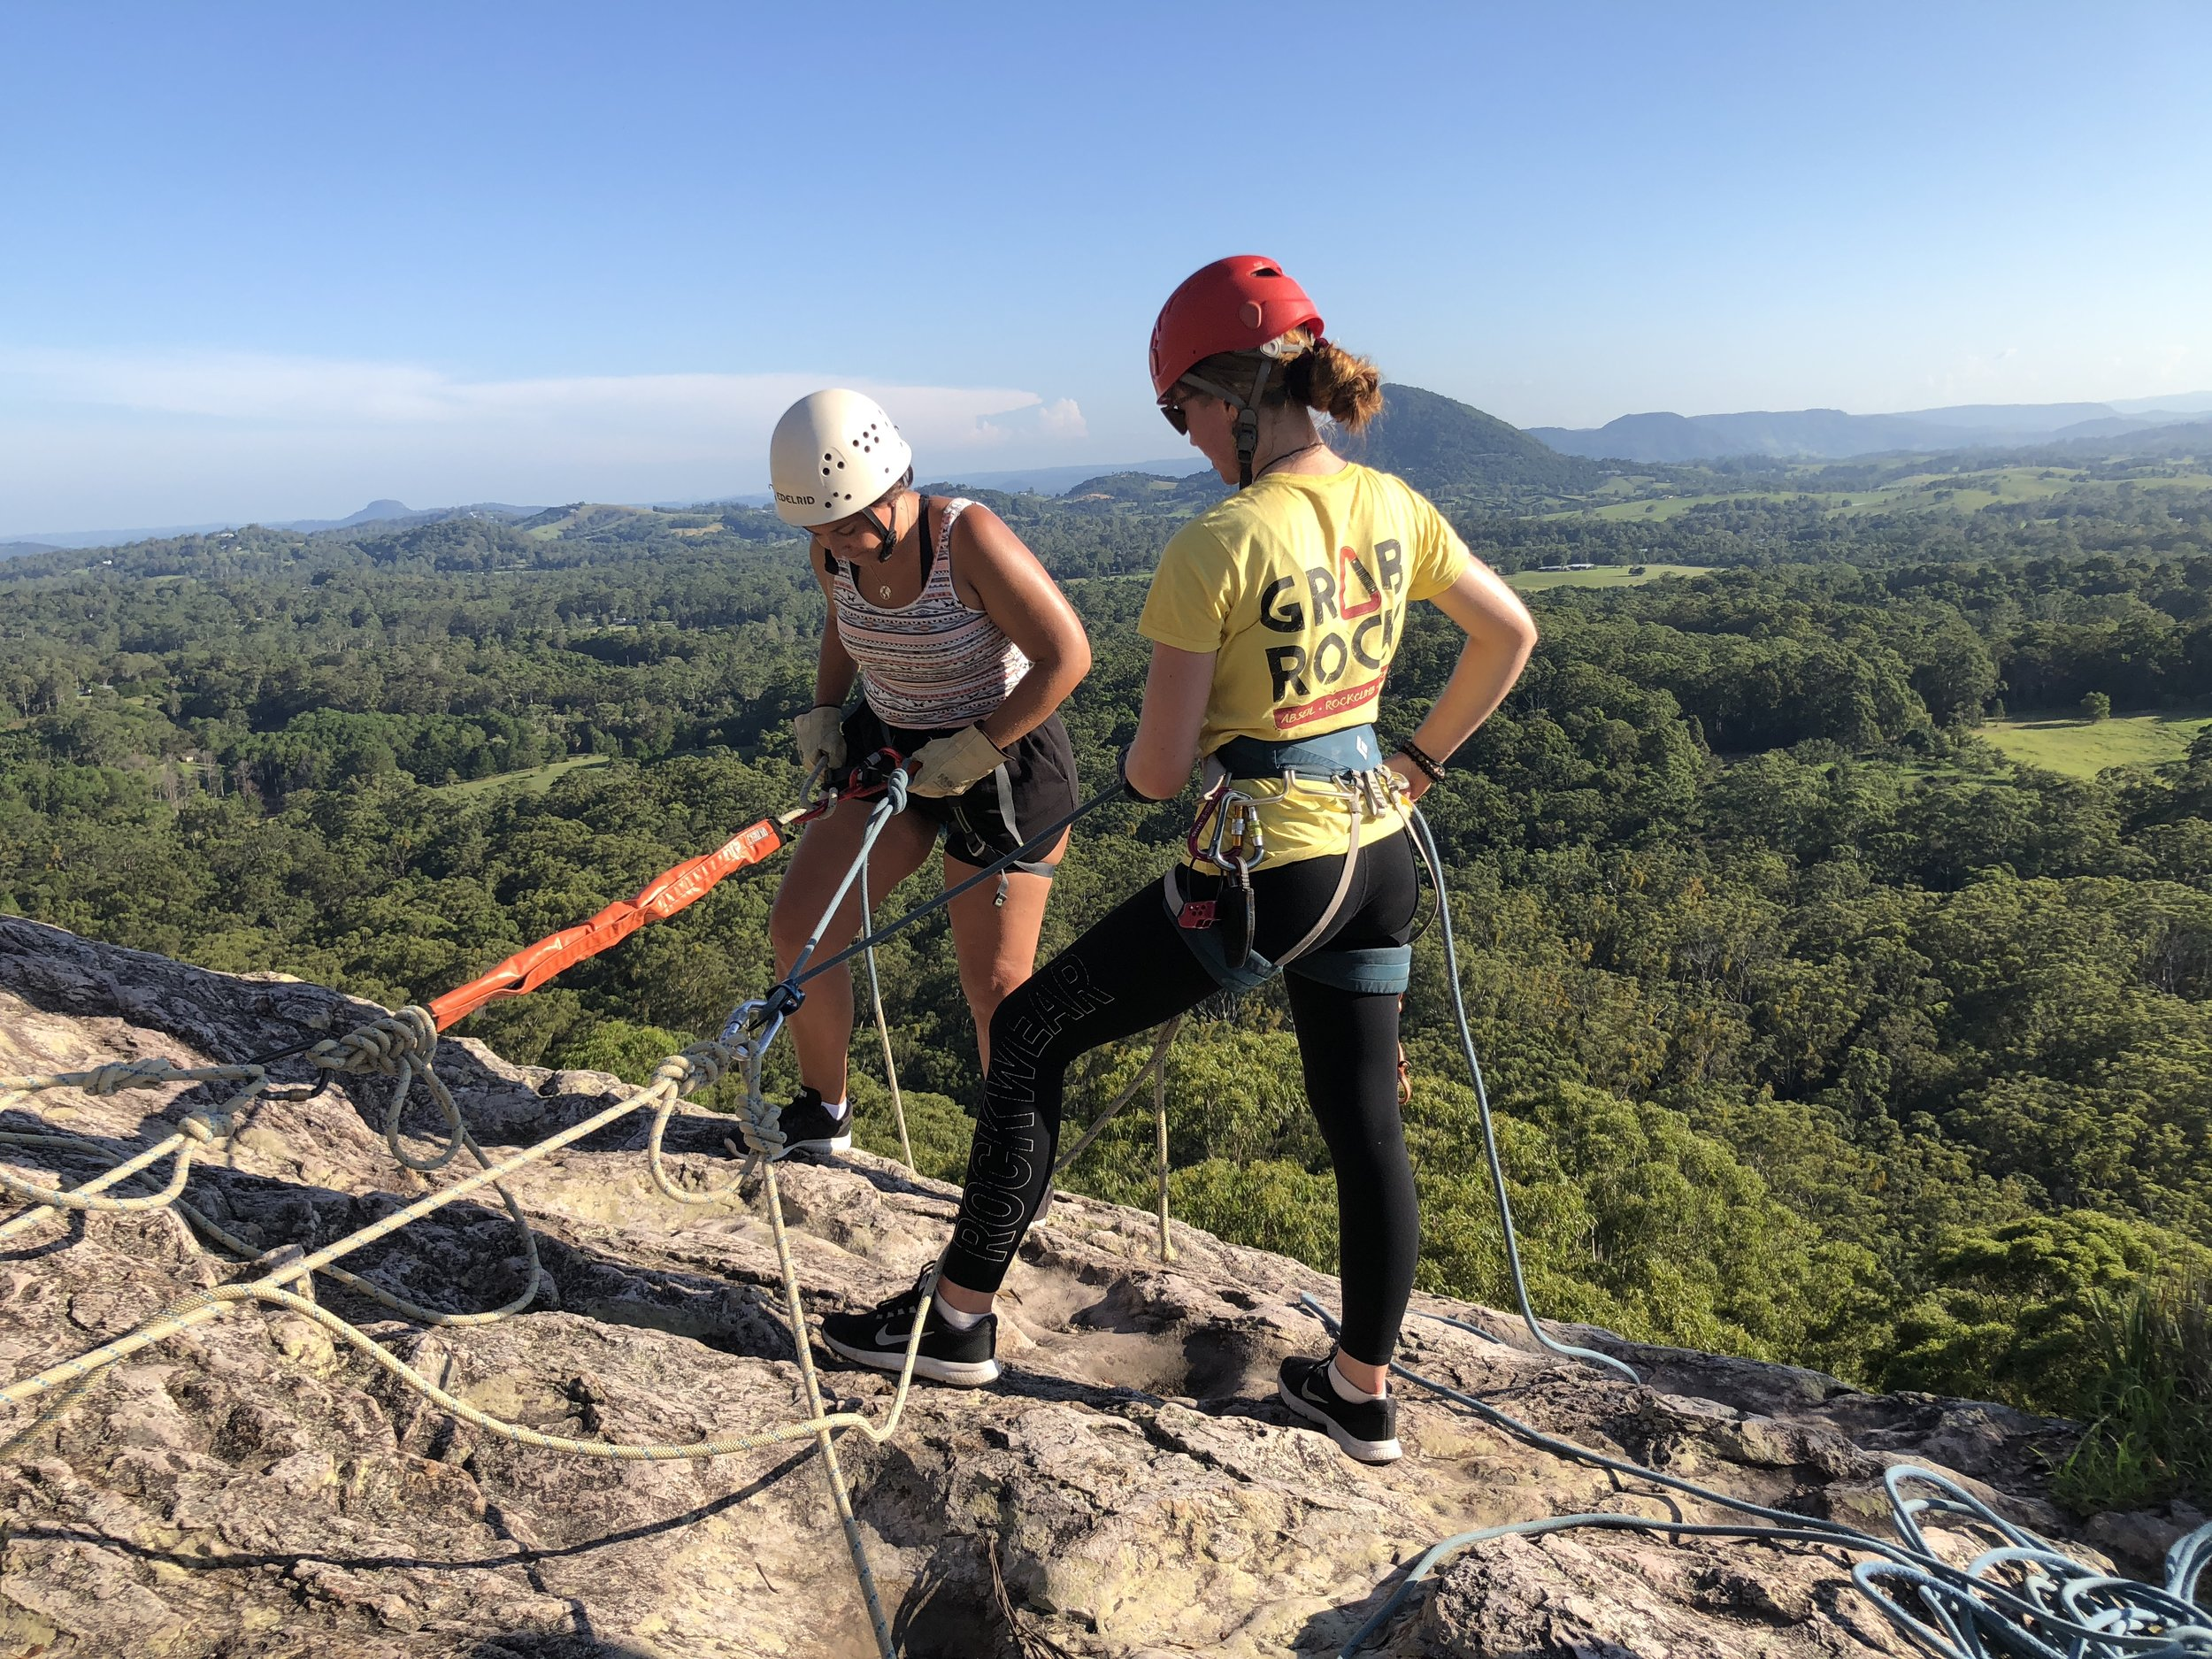 Link adventure together - We have the ability to link a massive range of adventure activities together into single or multi day adventure programs tailored just for your group.